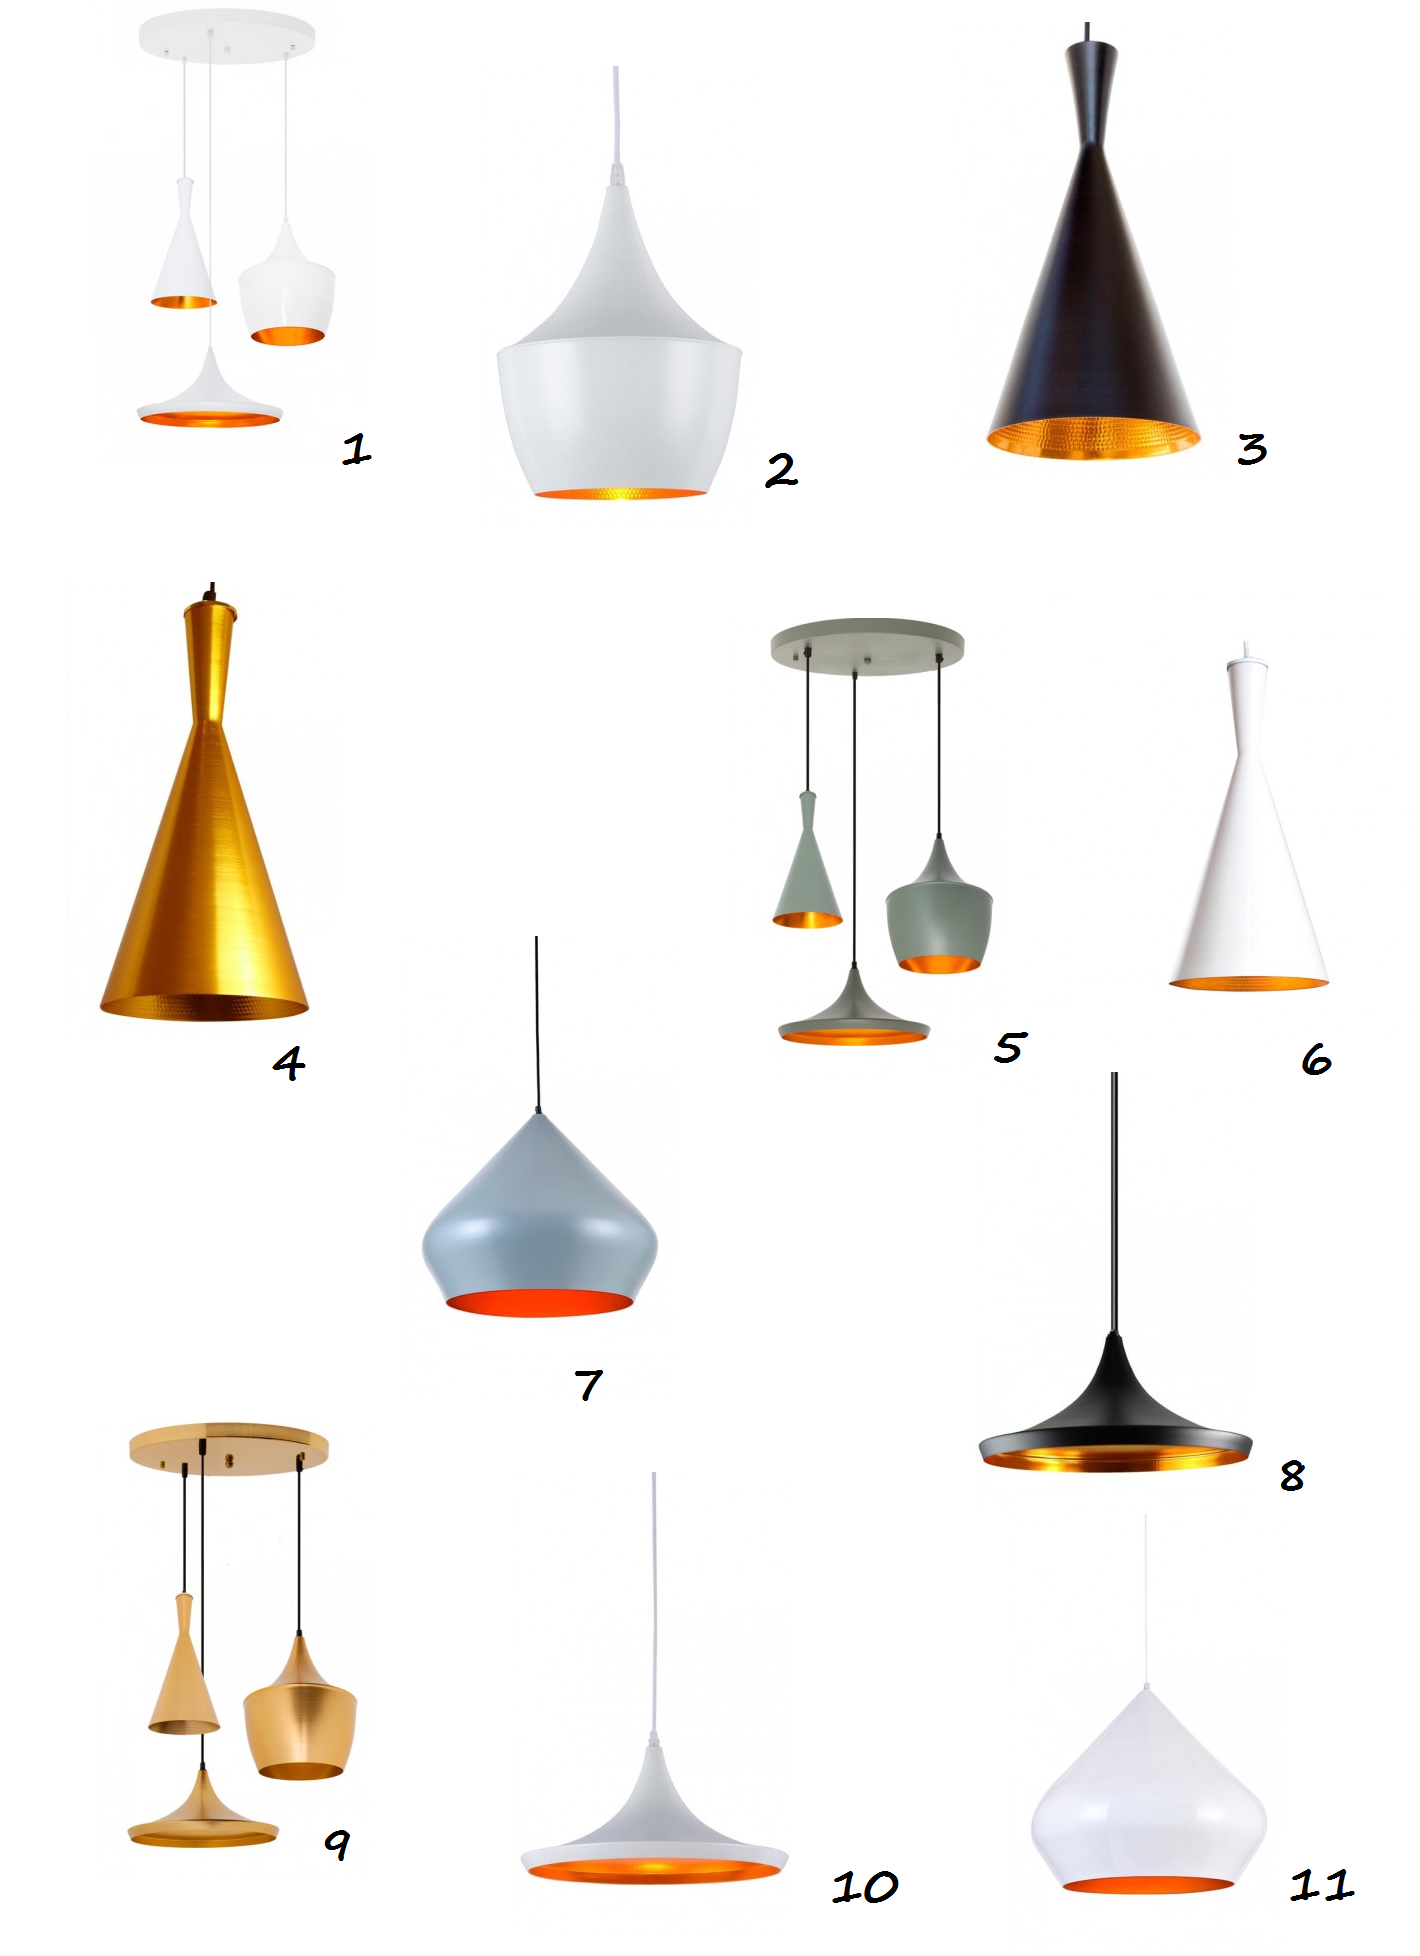 Versiones de Lámparas Tom Dixon